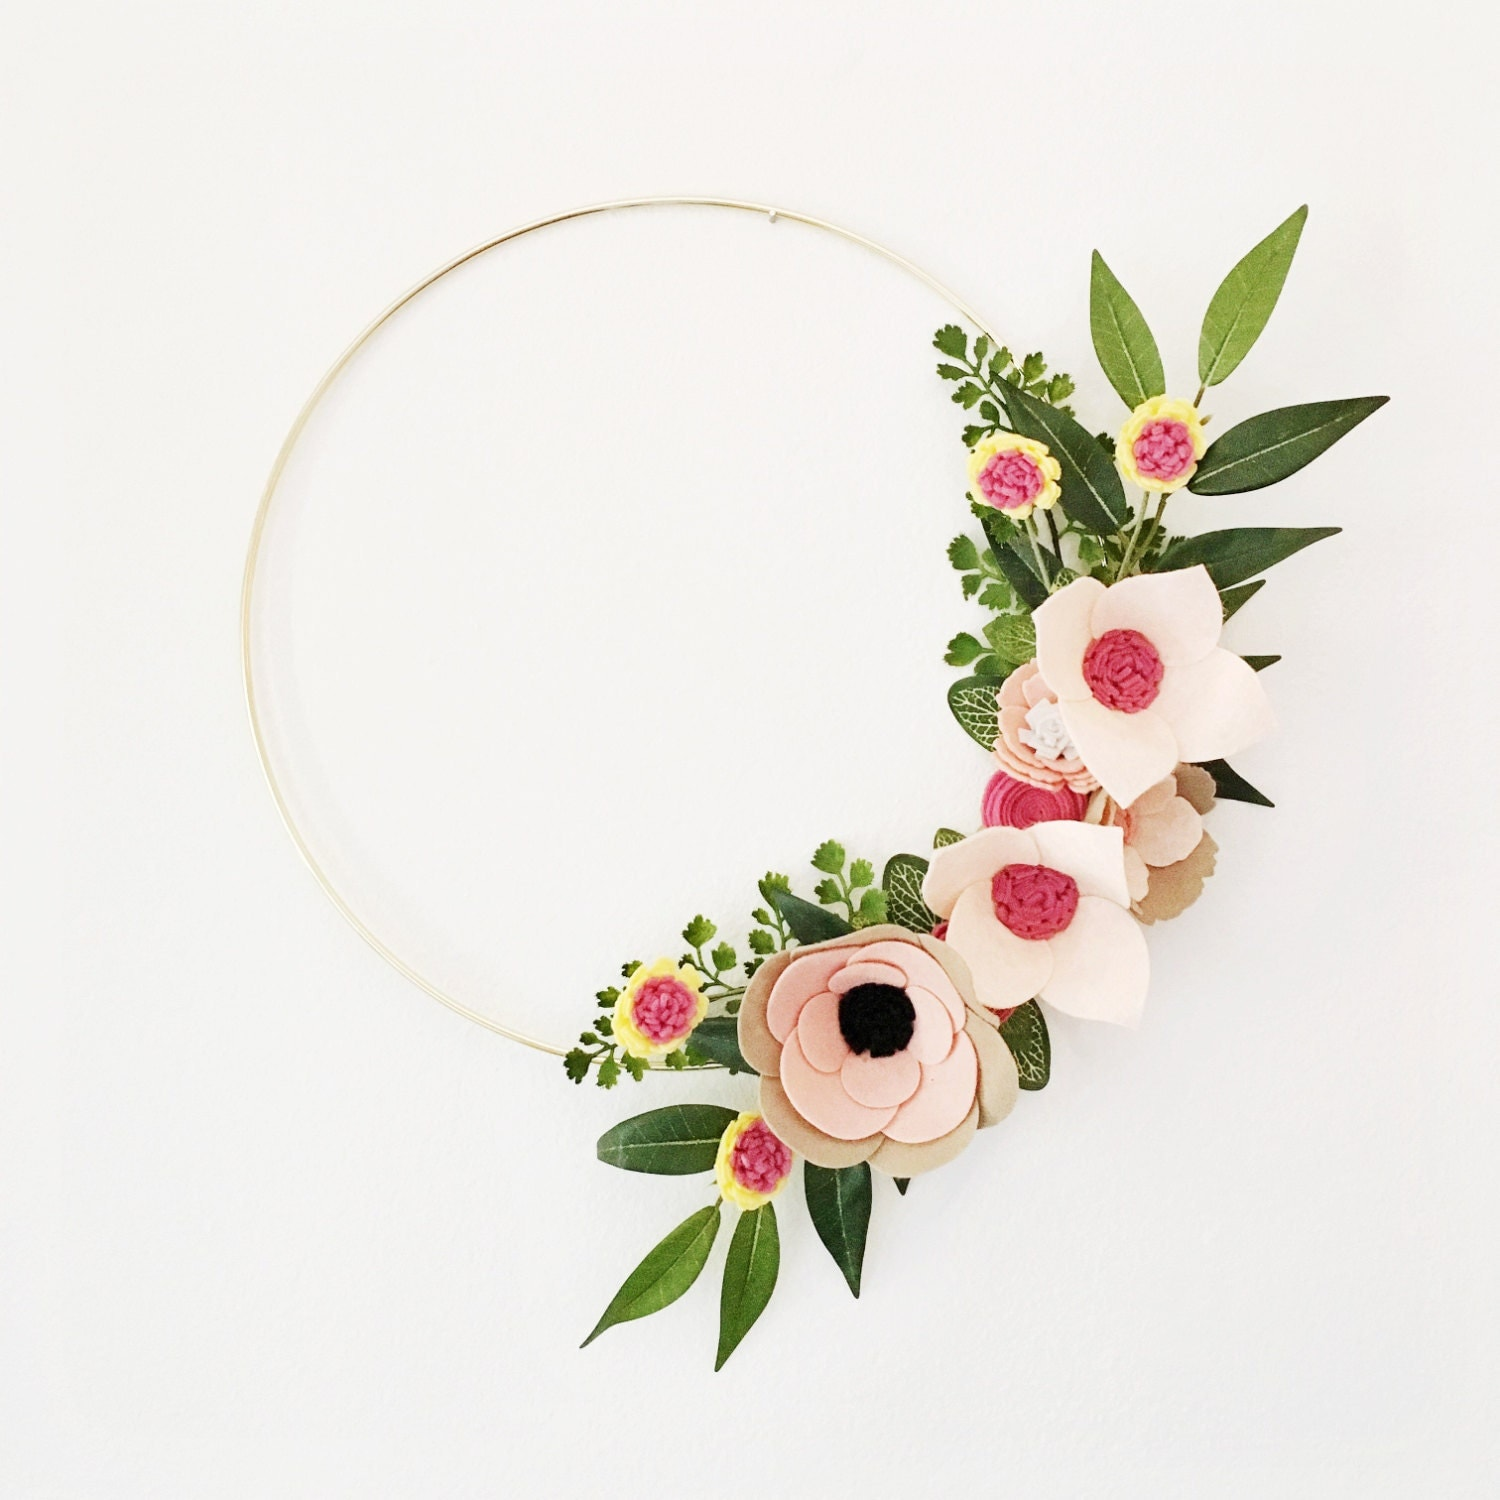 Rifle Paper Co Inspired Wreath Wreaths Flower Wreath